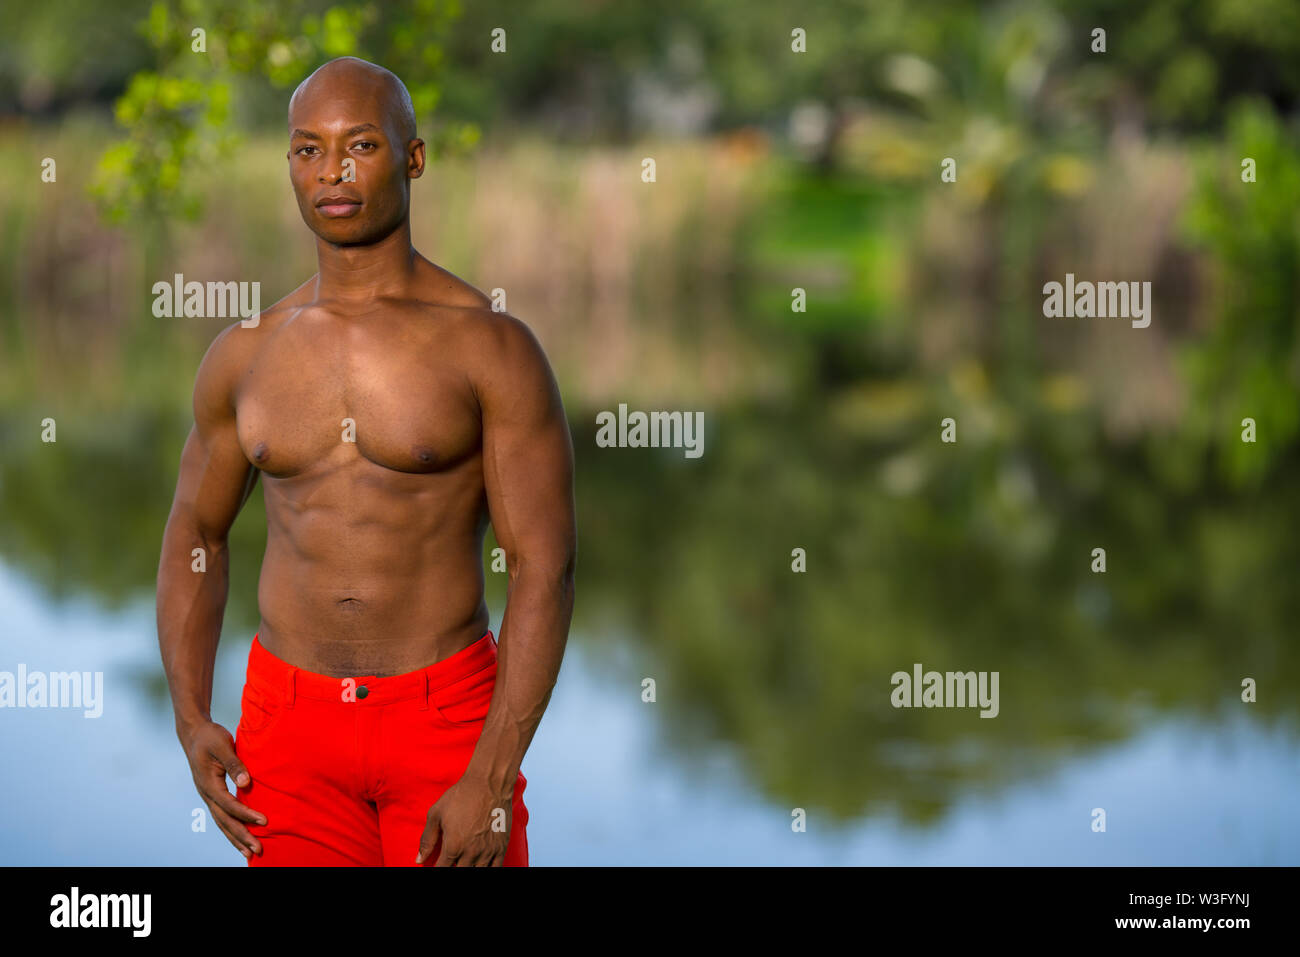 Color photo of a handsome young man posing shirtless in the park. Lit with off camera flash - Stock Image